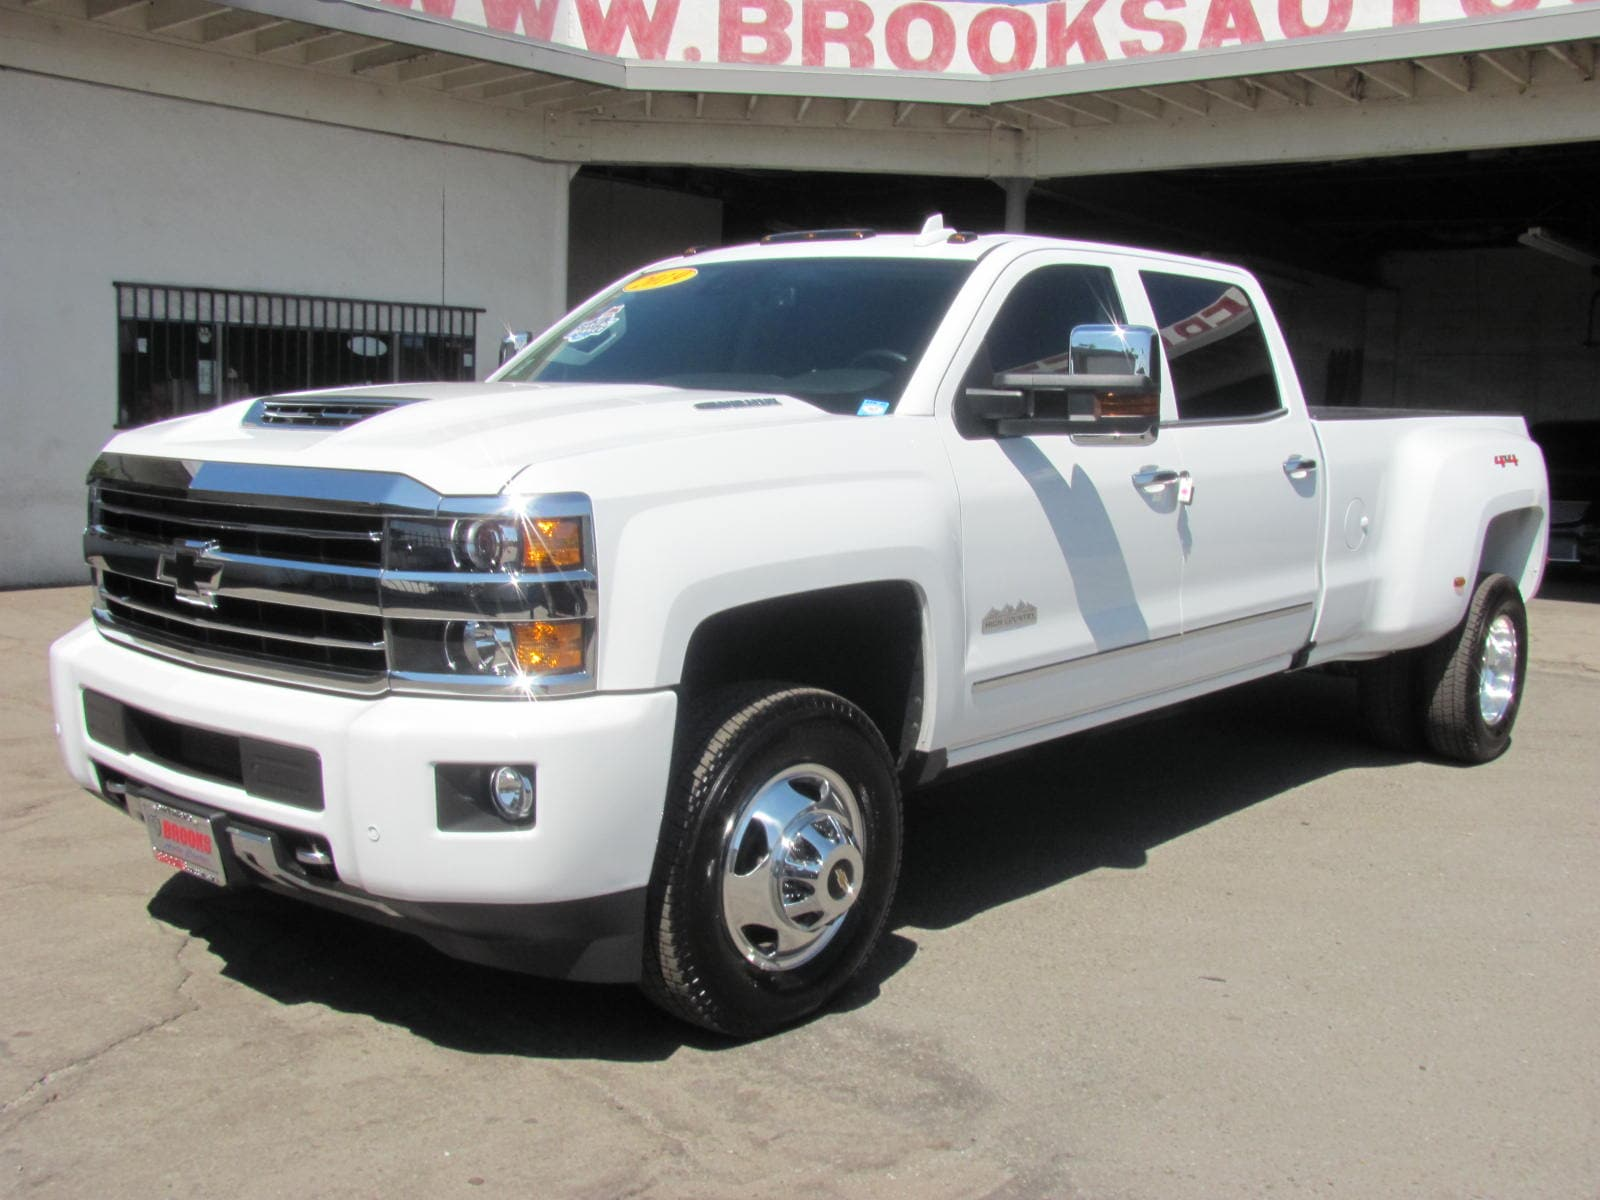 2019 Chevrolet Silverado 3500HD High Country Dually 6.6 Turbo Dsl 4WD Truck Crew Cab